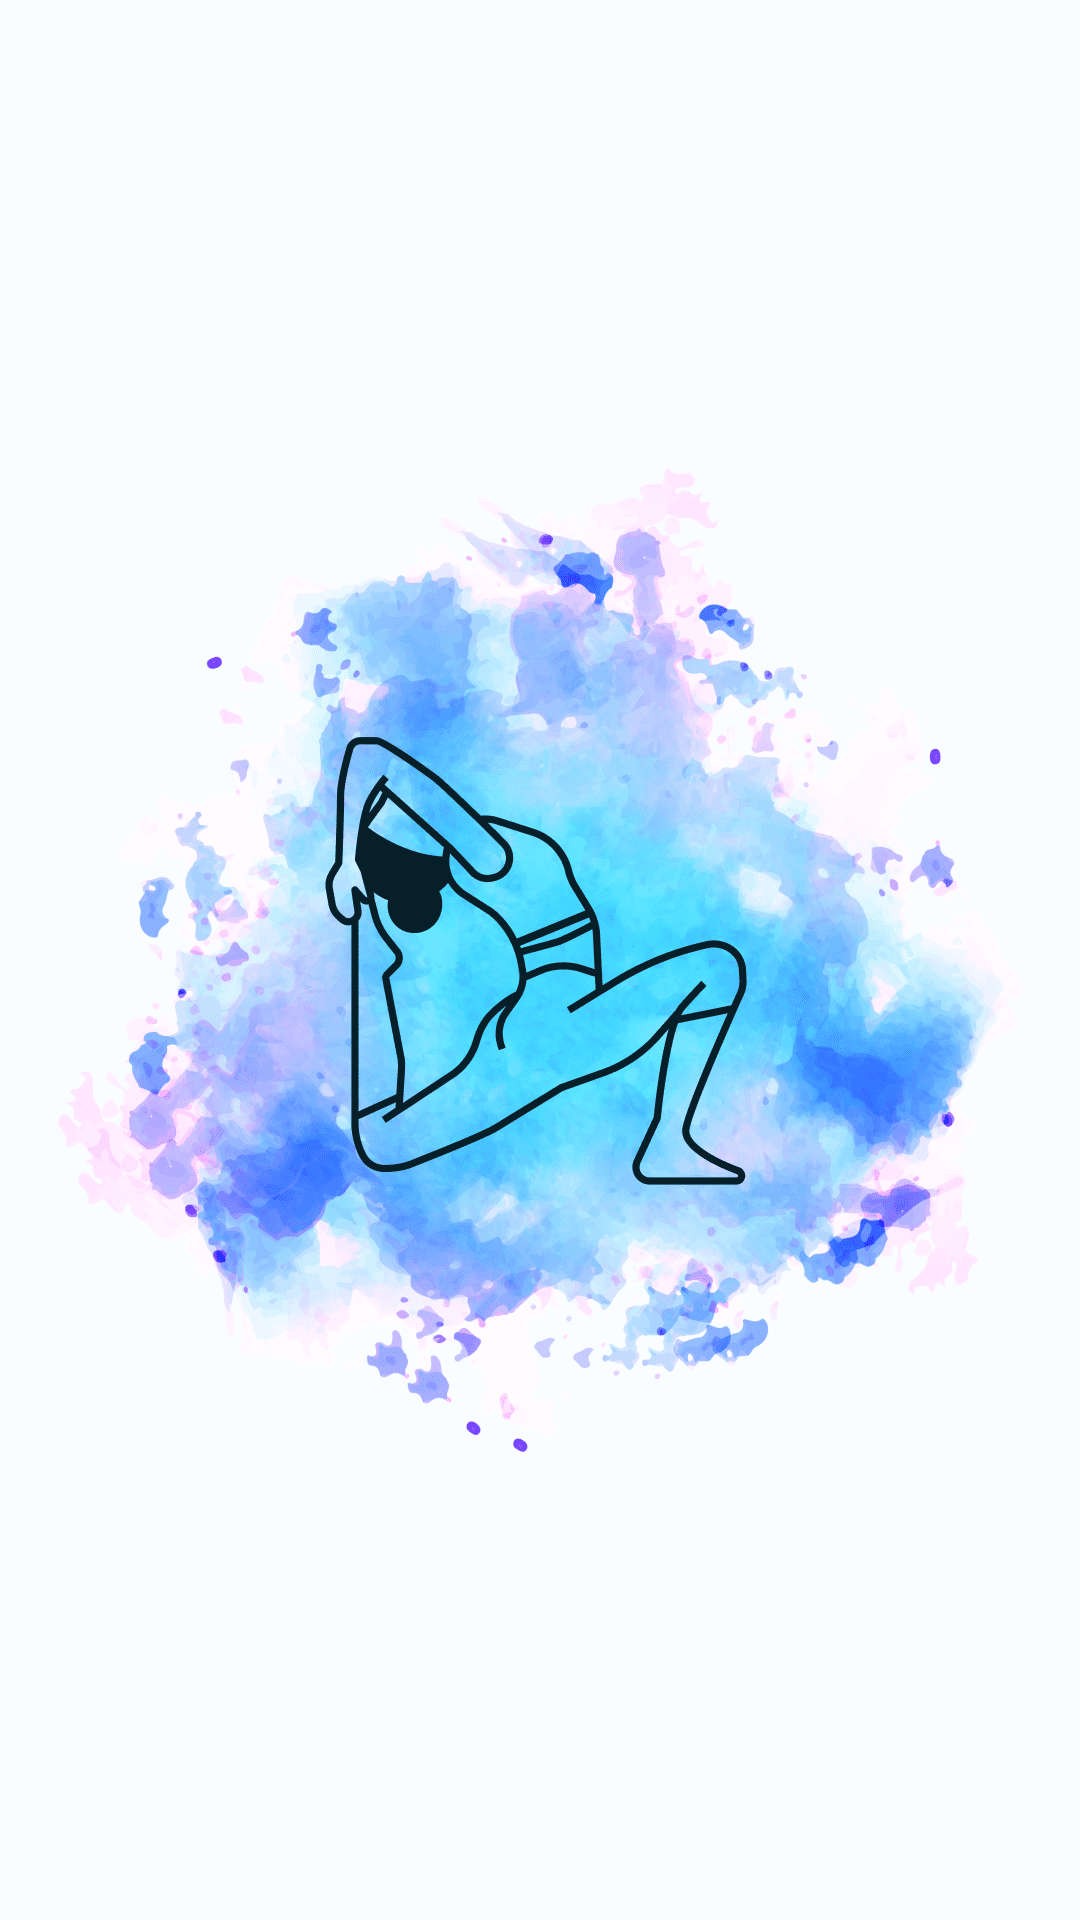 Blue with shades of pink and purple watercolor background with a girl in an asana.